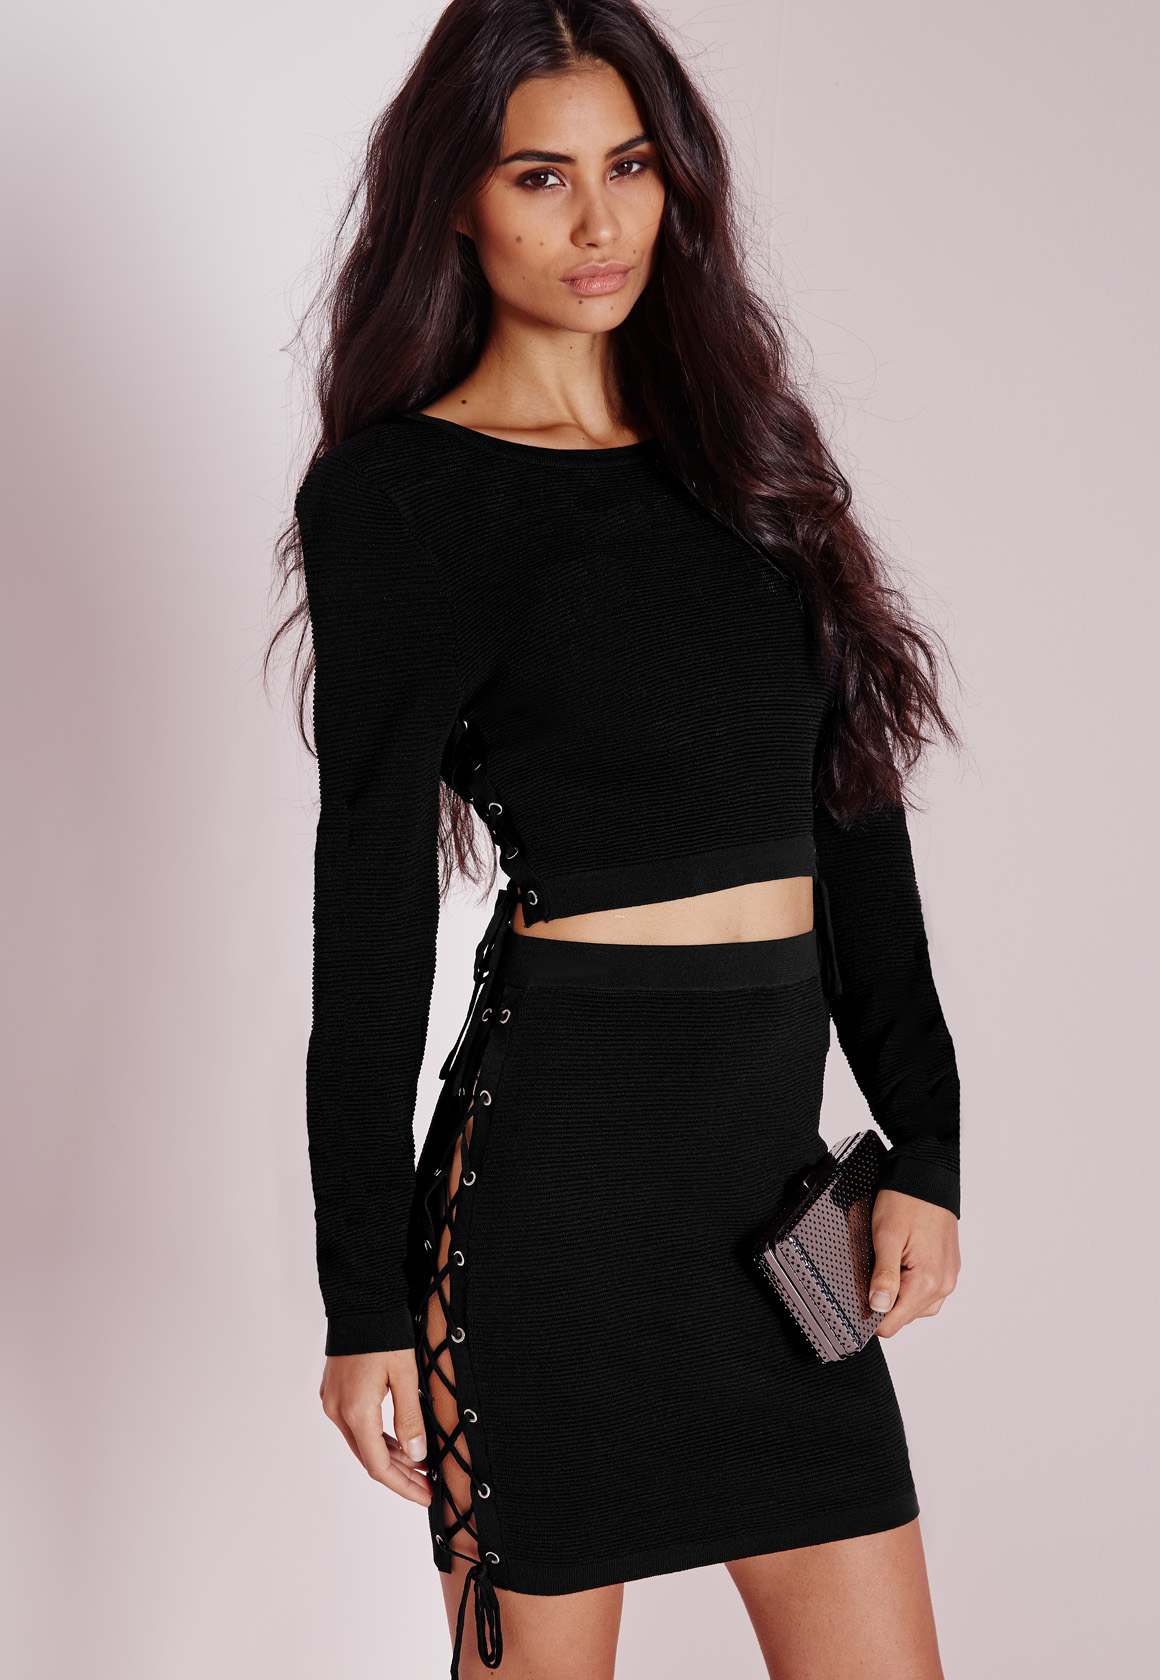 b29fa5f7ebbb Missguided Lace Up Tie Side Knitted Mini Skirt Black in Black - Lyst